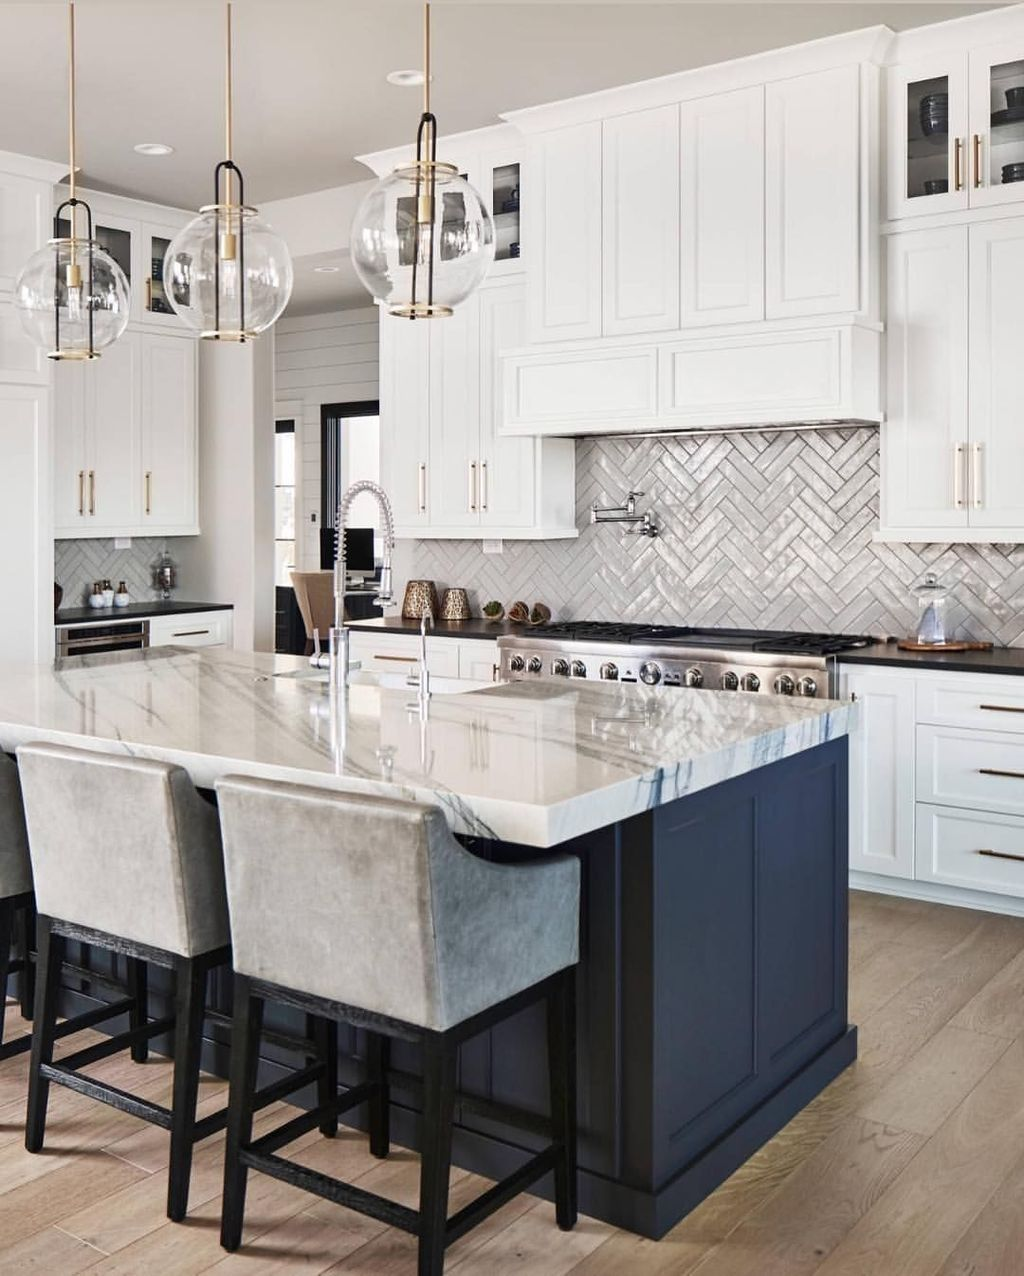 15 Spectacular Kitchen Island Ideas In 2020